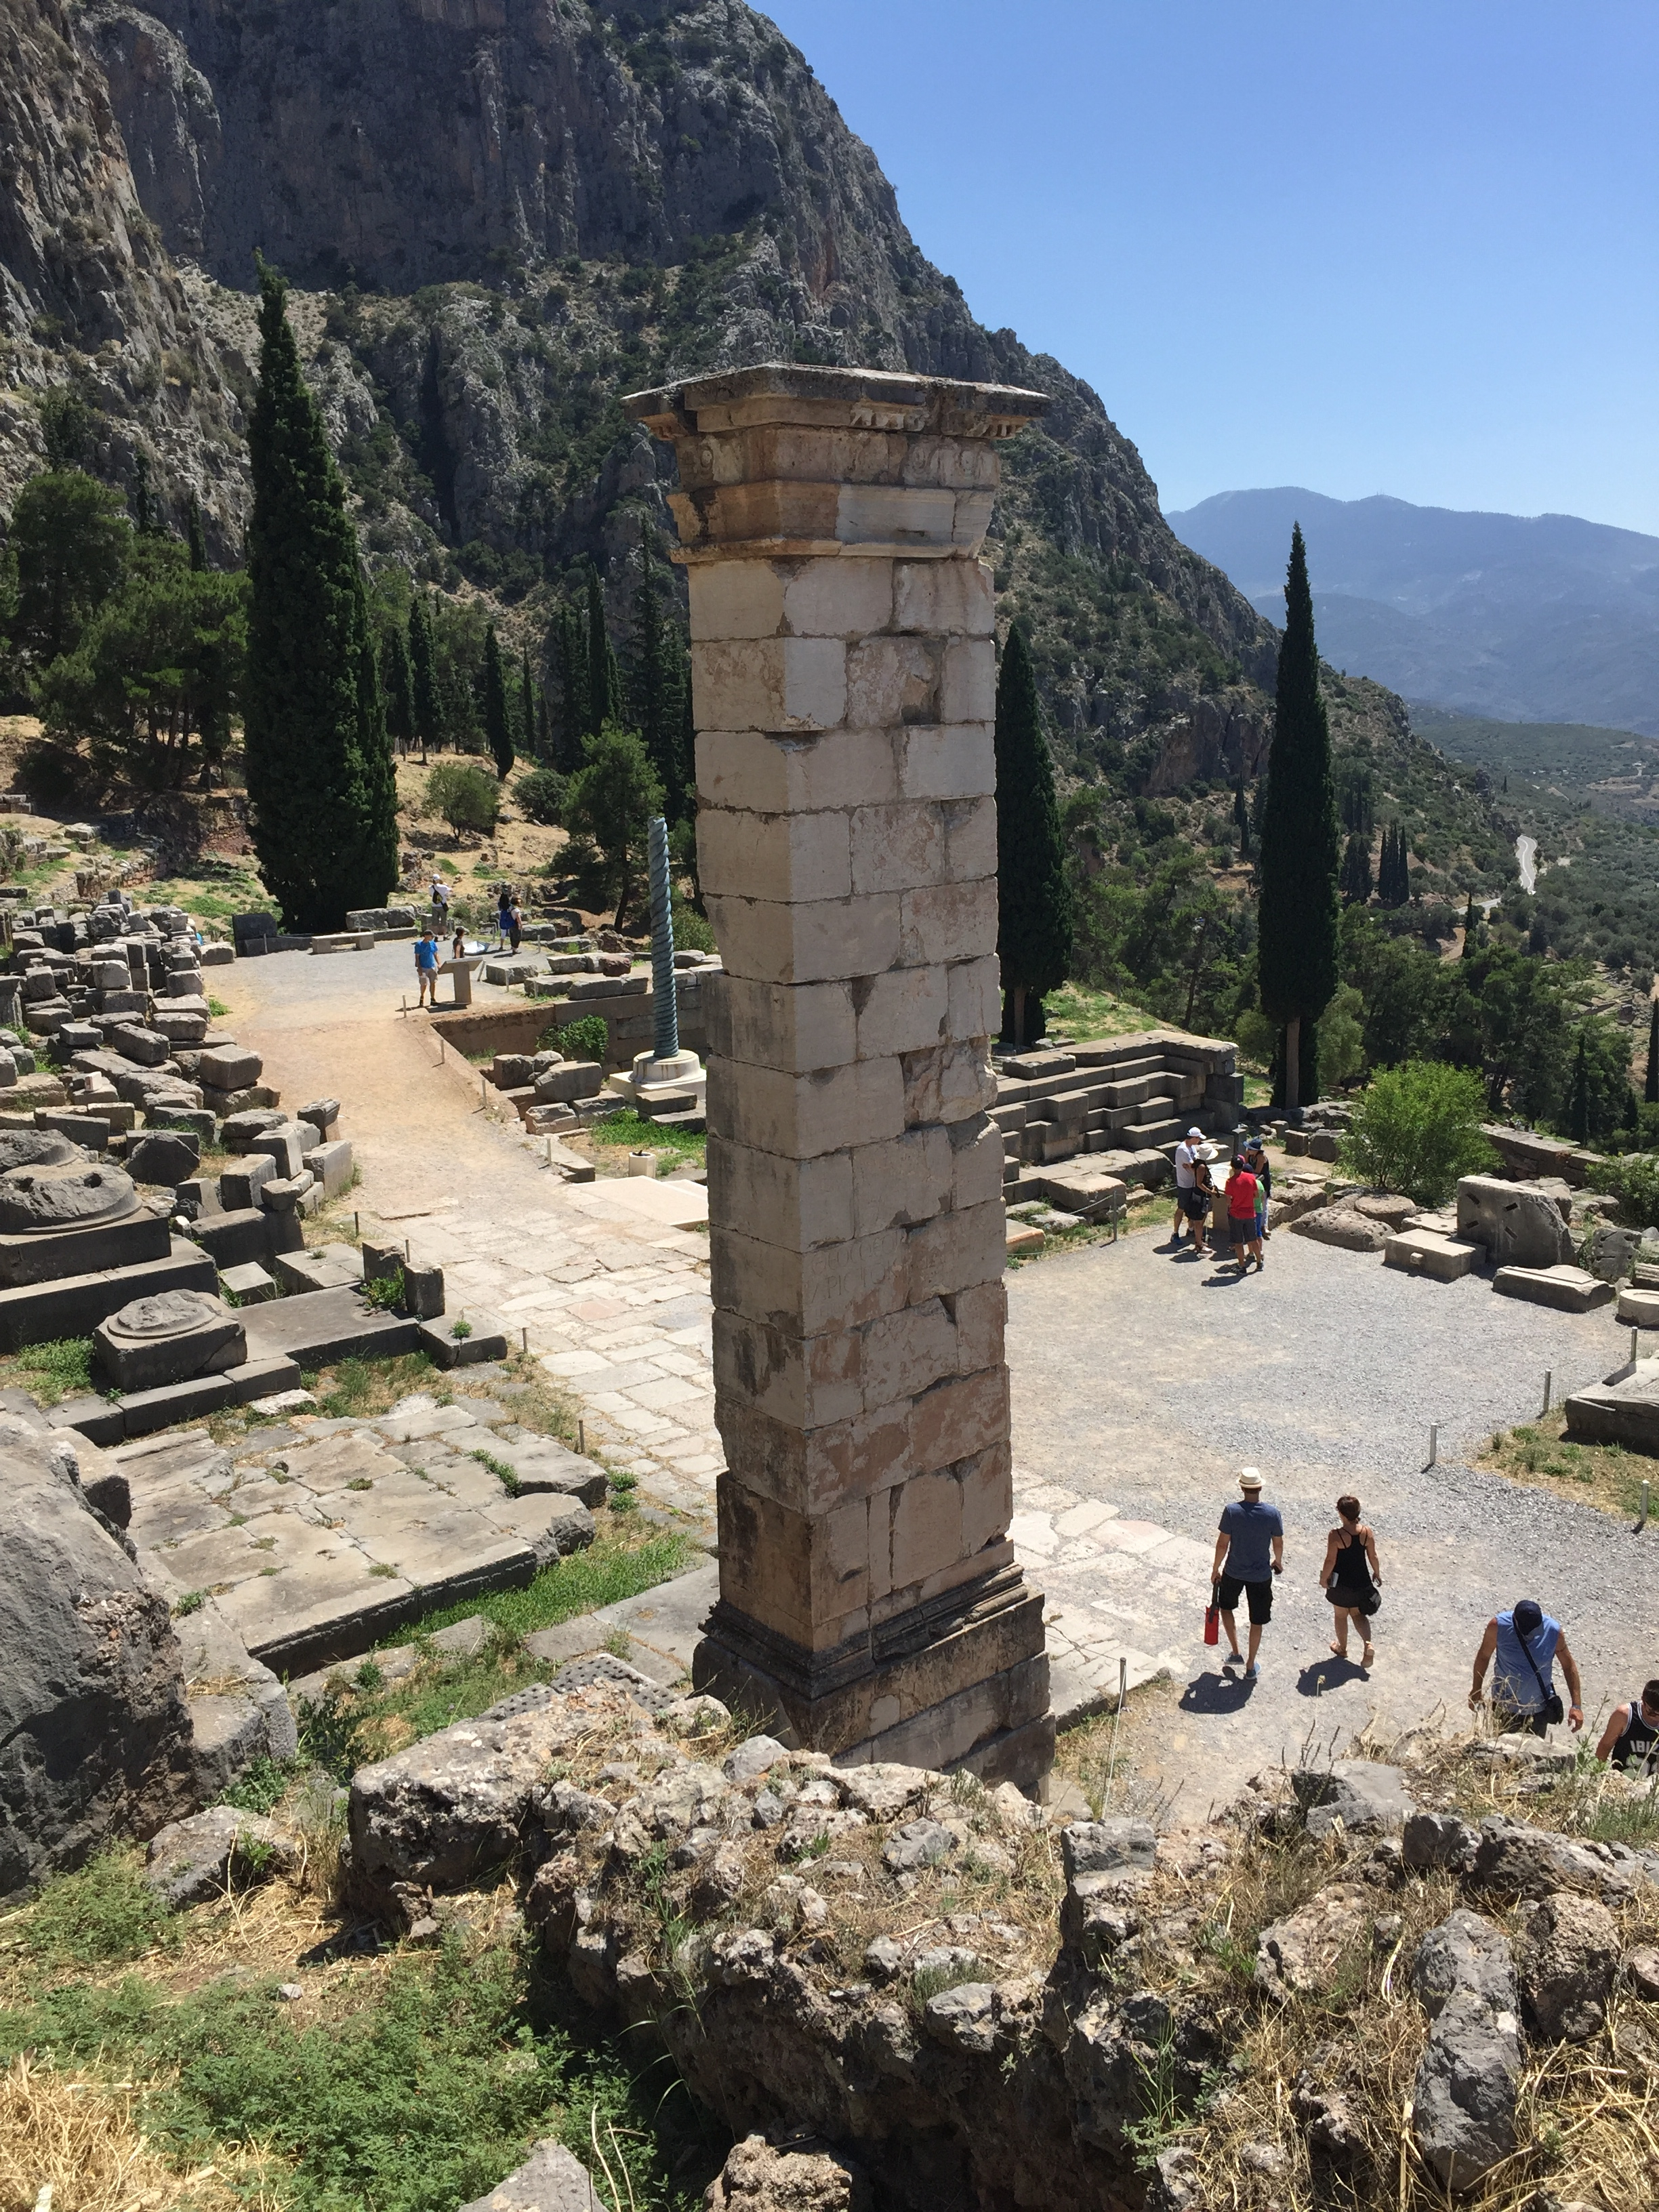 The pillar which originally hosted the Aemilius Paulus monument, right beside the Temple of Apollo at Delphi.